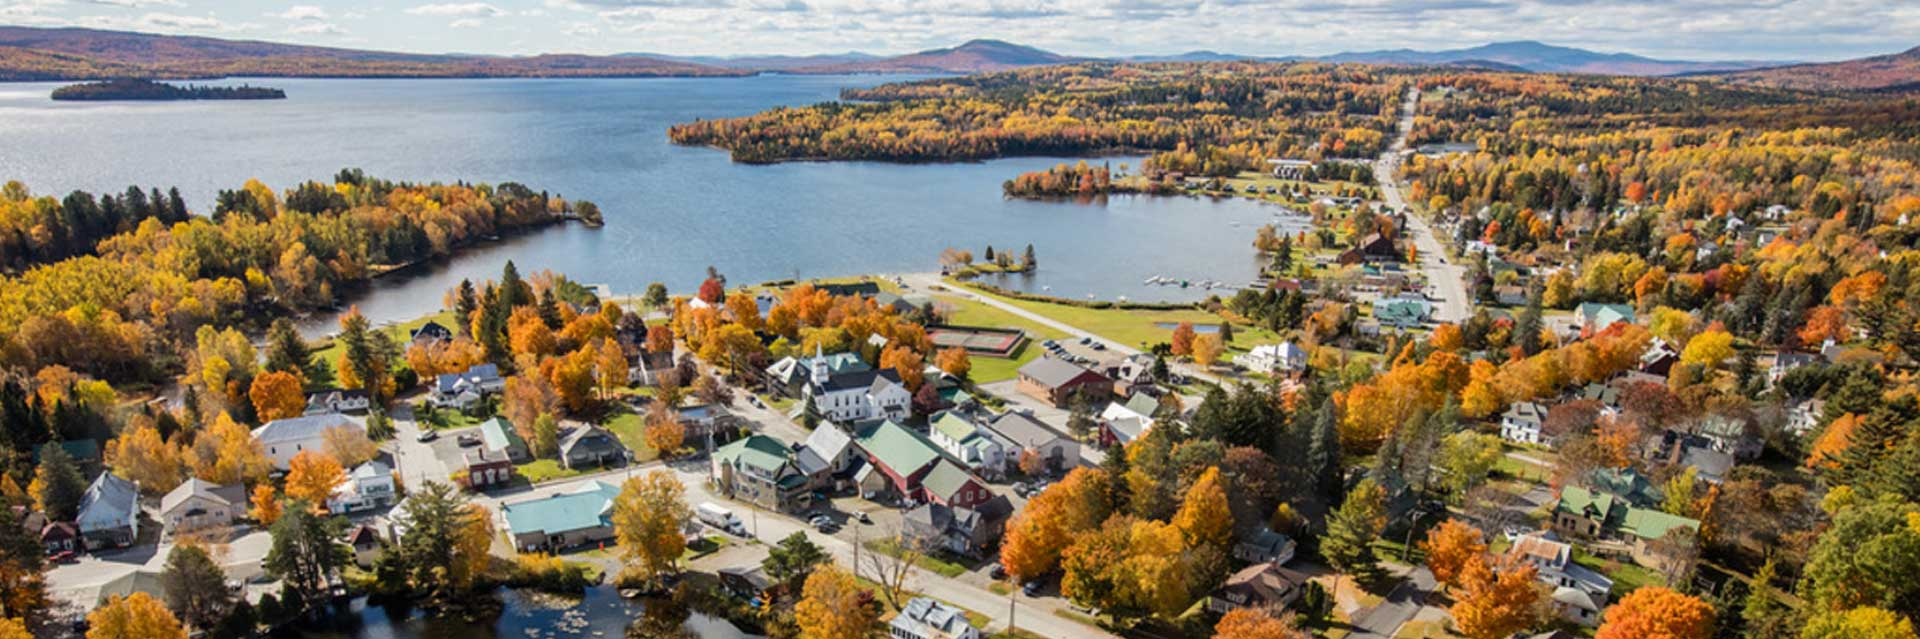 Rangeley-Fall-Foliage